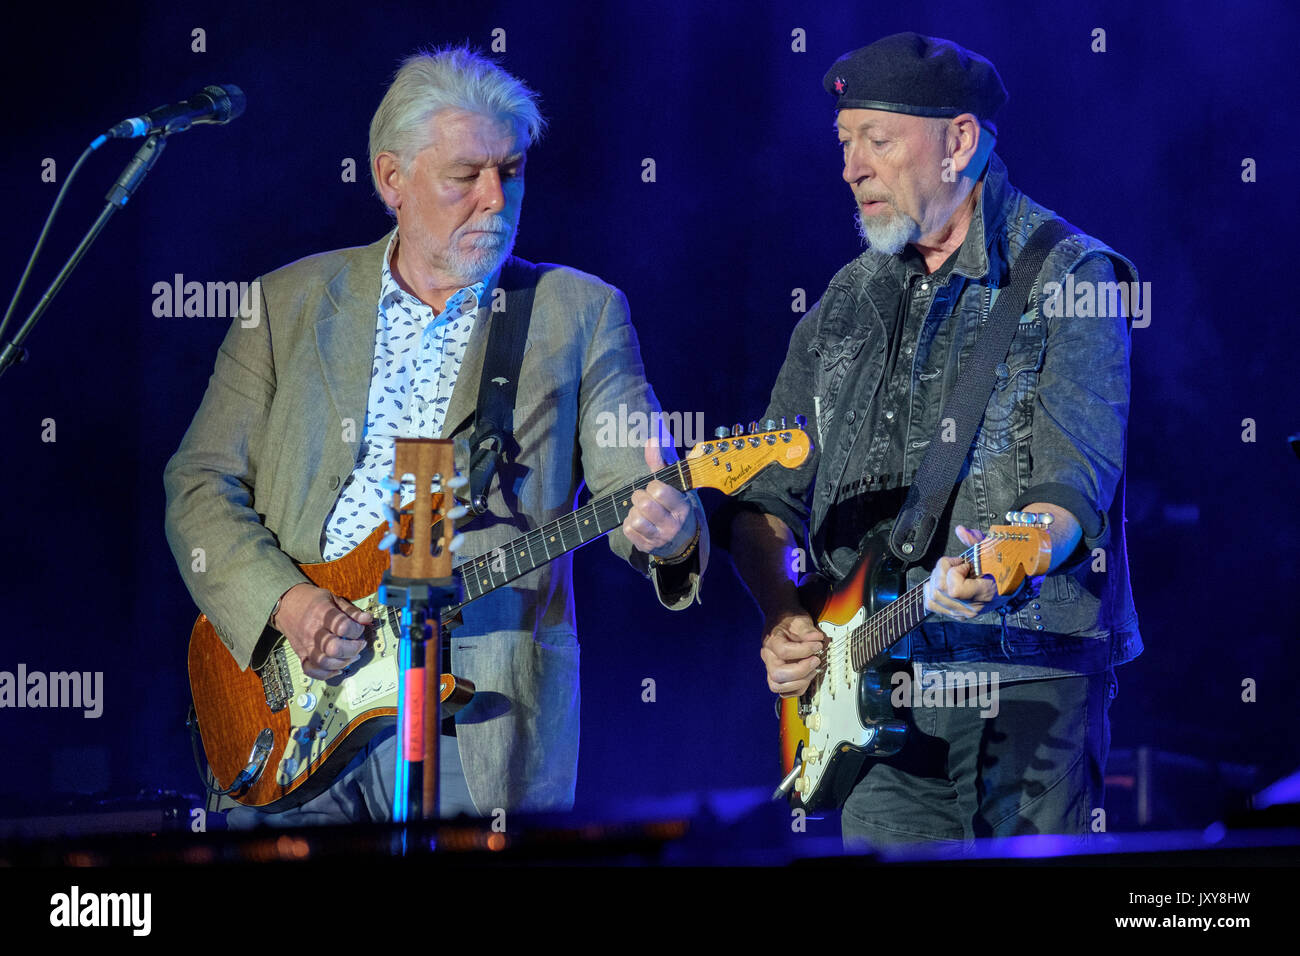 Simon Nicol of Fairport Convention and Richard Thompson performing at Fairport's Cropredy Convention, Banbury, Oxfordshire, England, August 12, 2017 - Stock Image